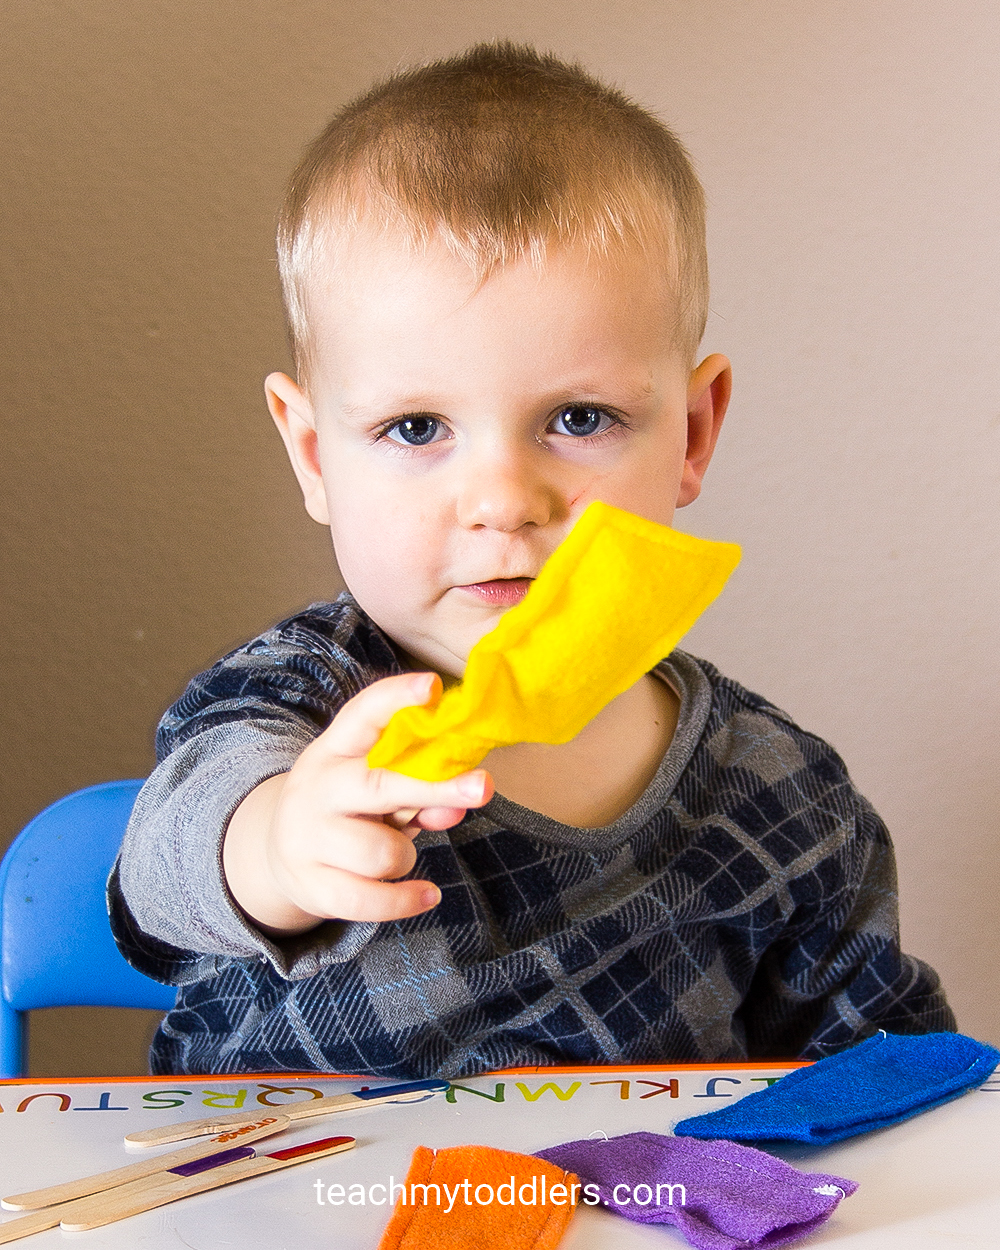 This popsicle stick game is a great idea to teach your toddlers colors